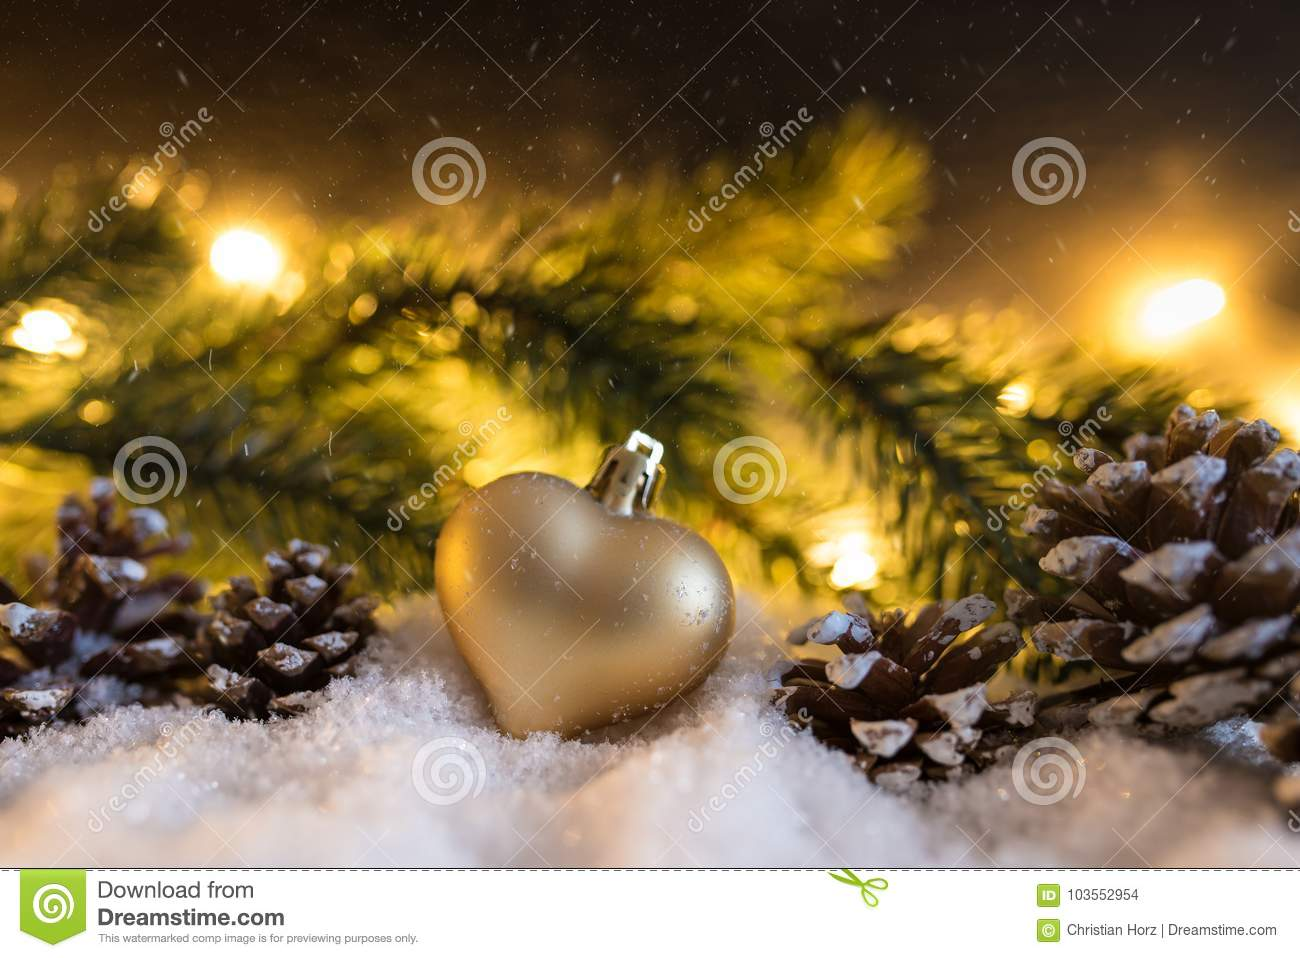 Winter christmas decoration with heart shaped christmas ornament, cones, fir branch and glowing lights